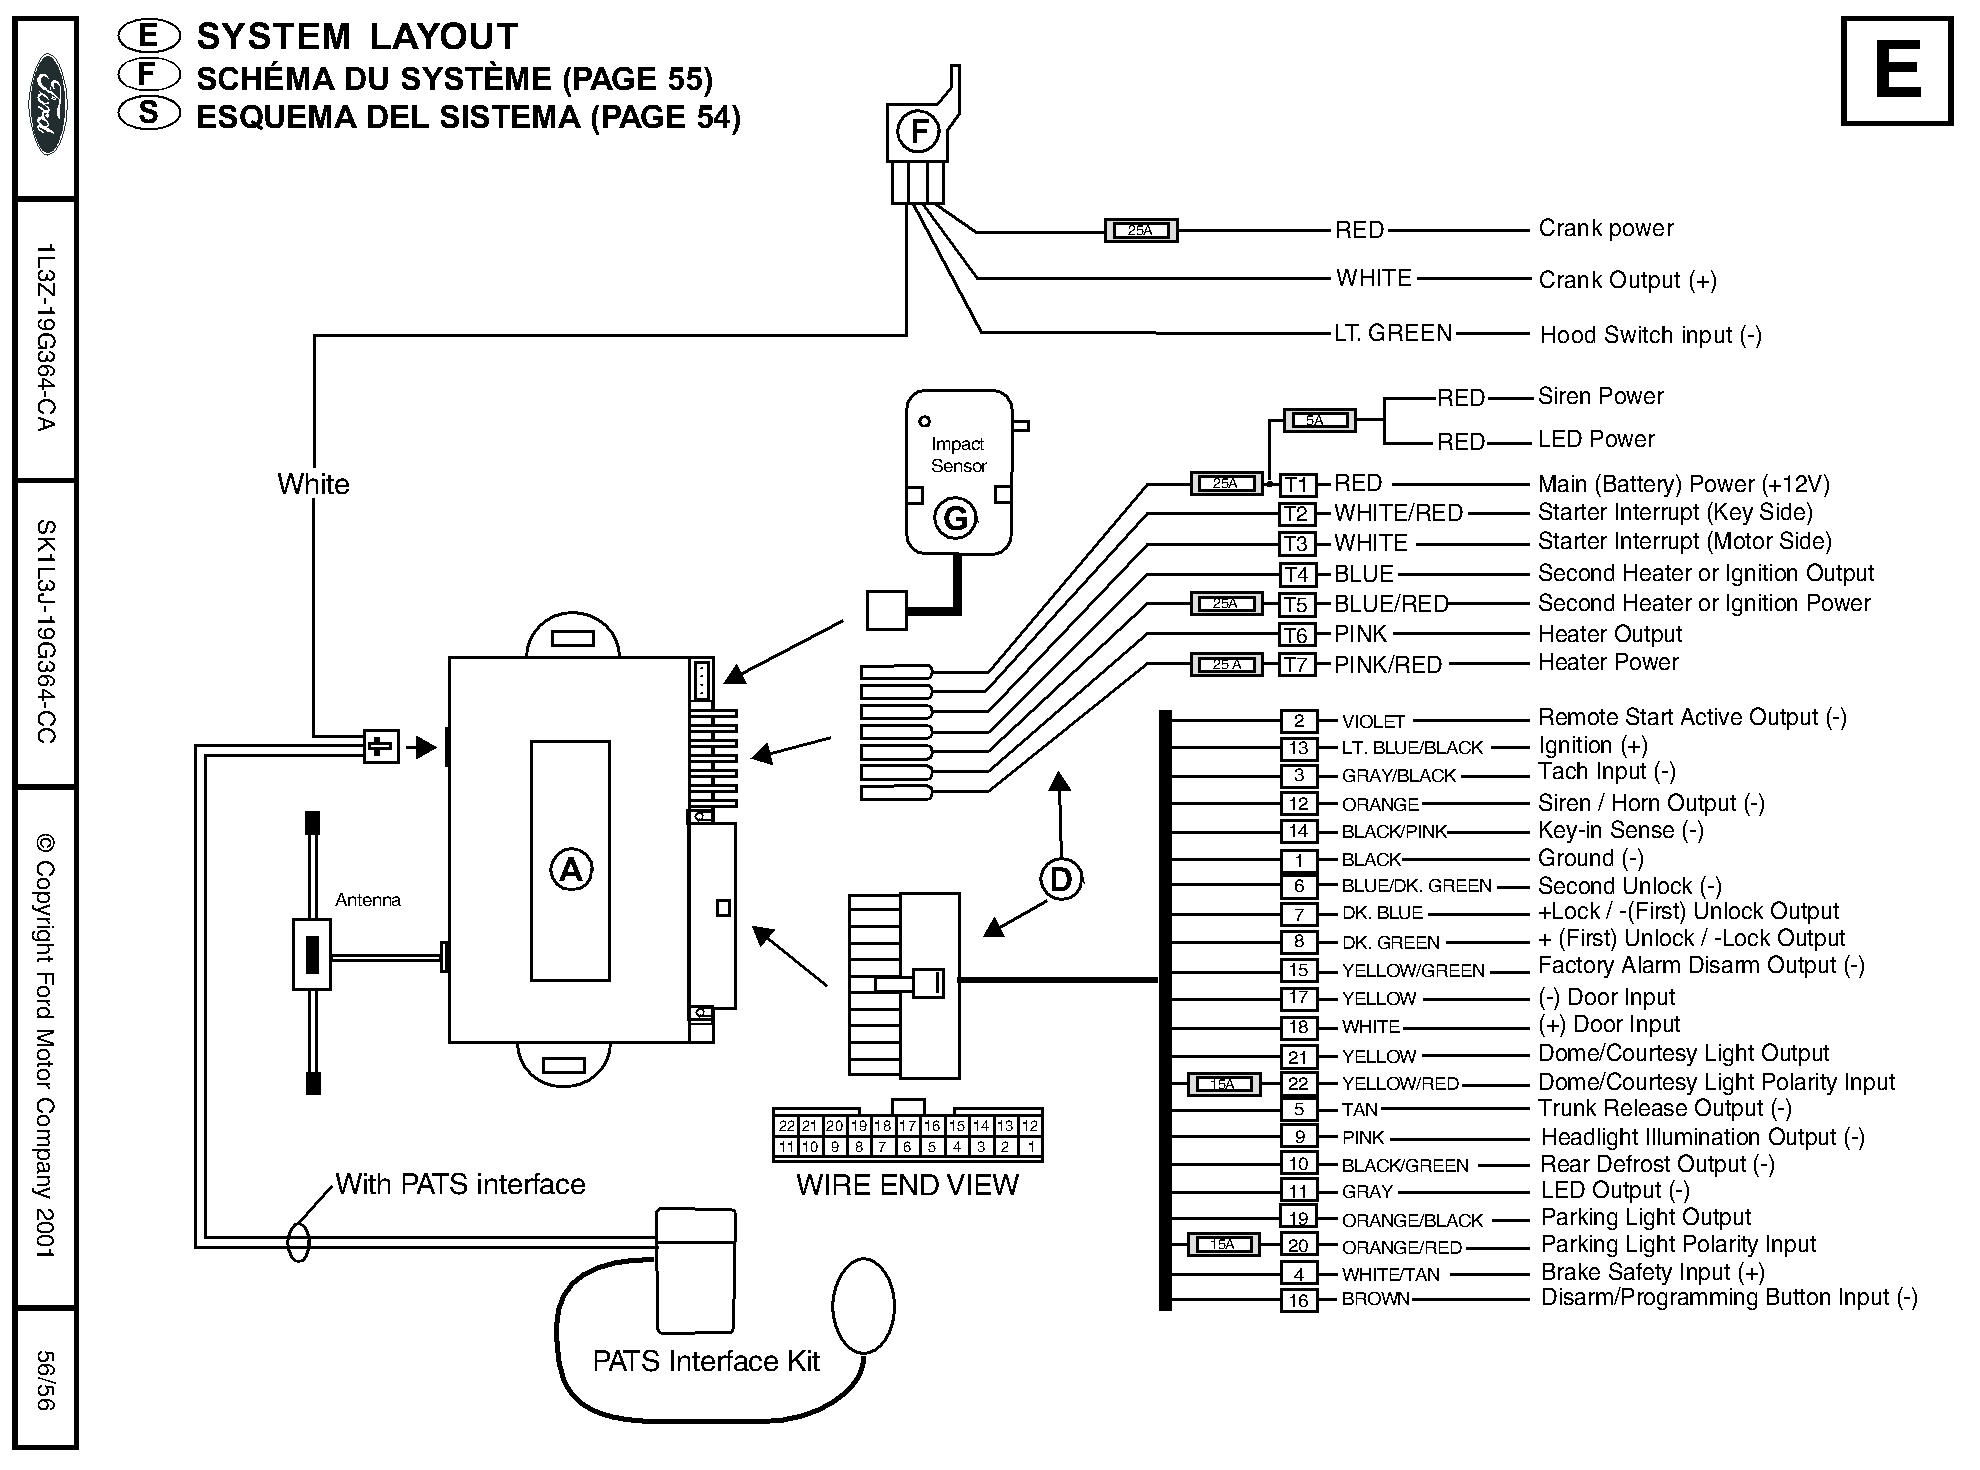 ford pats wiring diagrams  ford  free engine image for